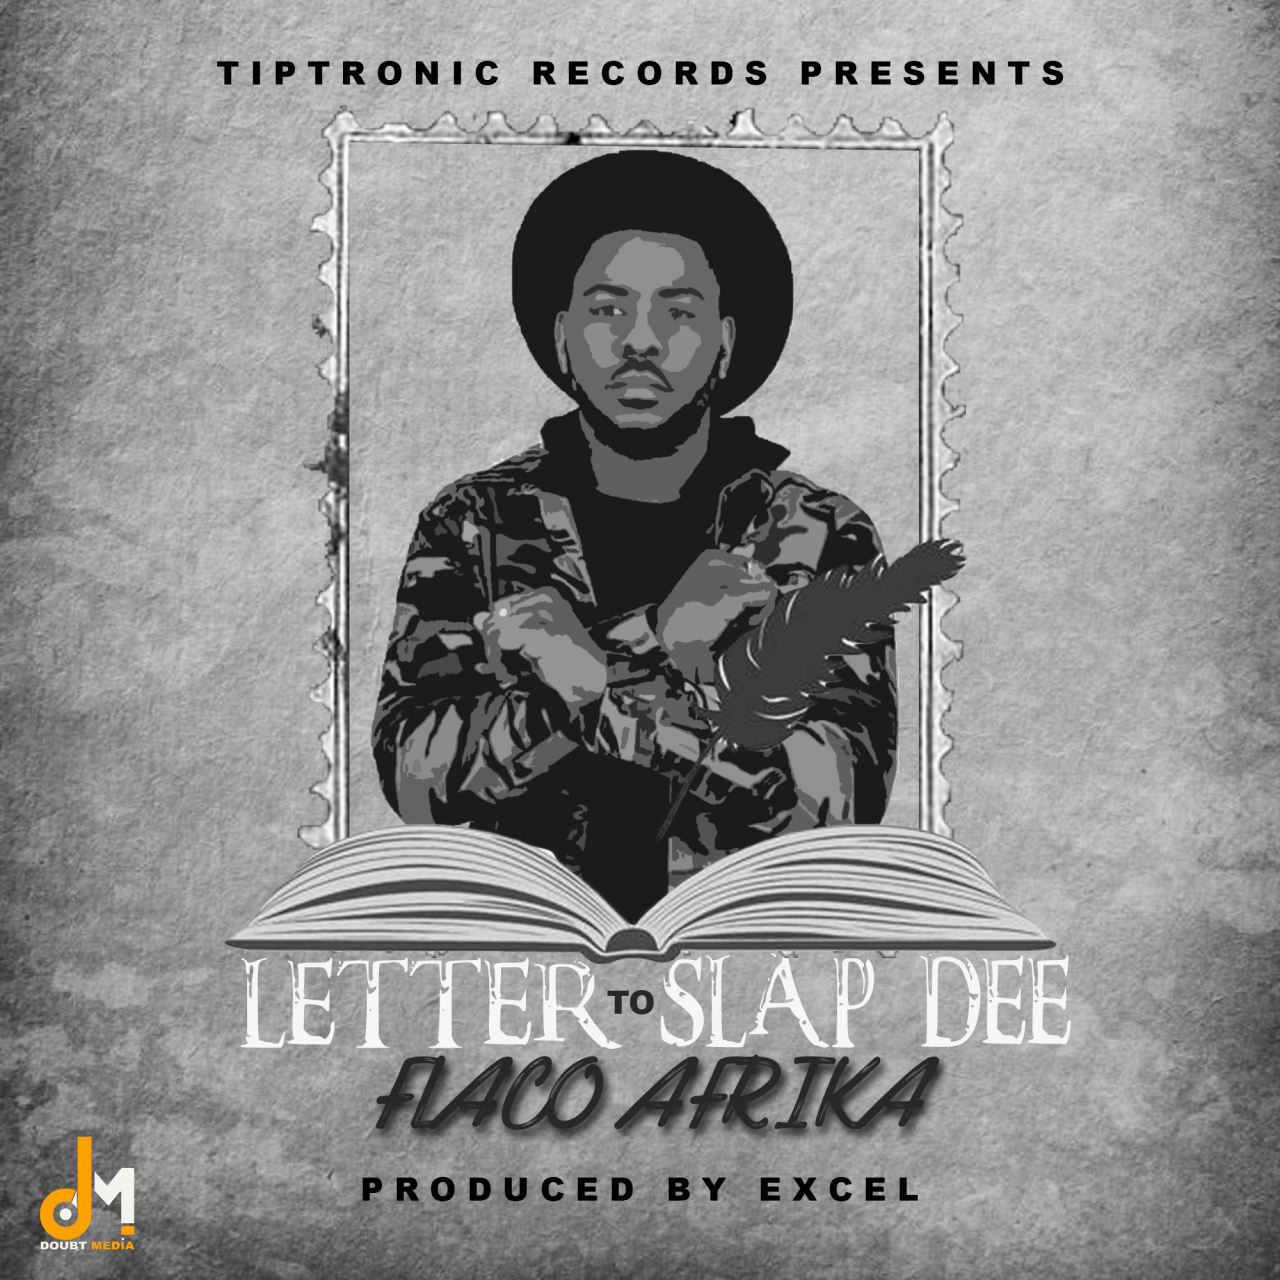 Flaco Afrika releases a rap song entitled Letter To Slap Dee